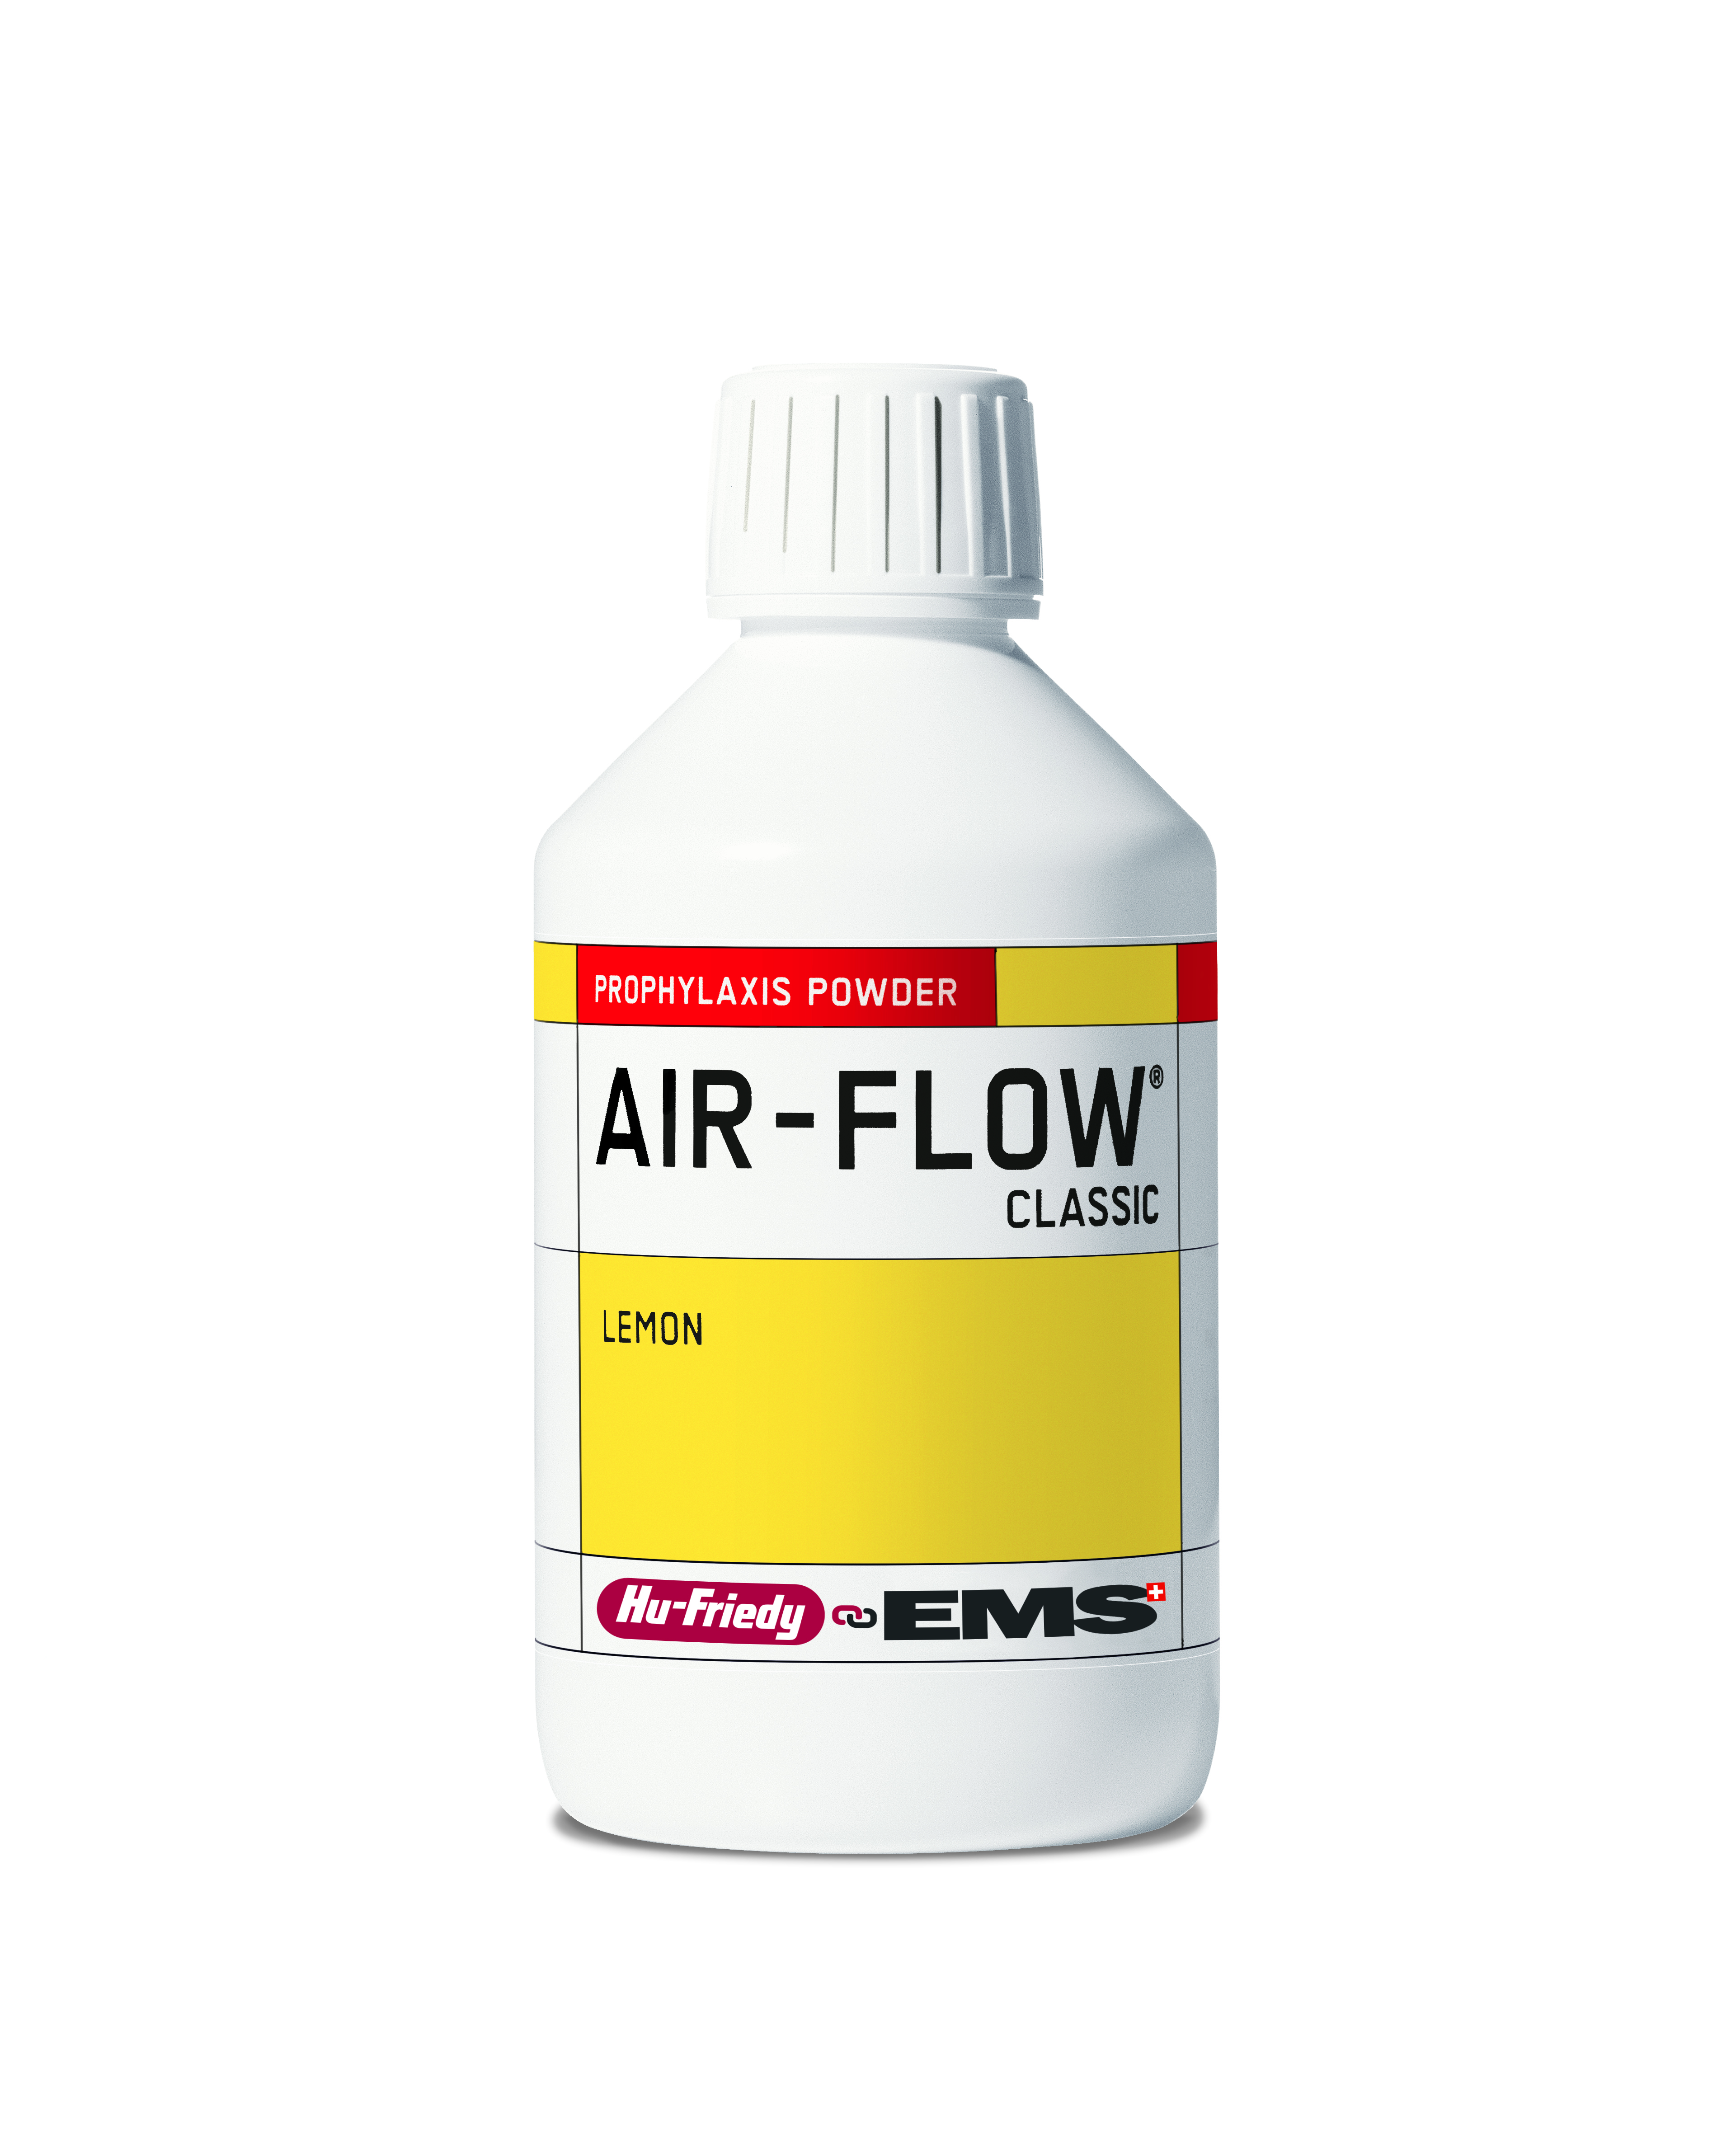 Hu-Friedy EMS AIR-FLOW Classic Powder